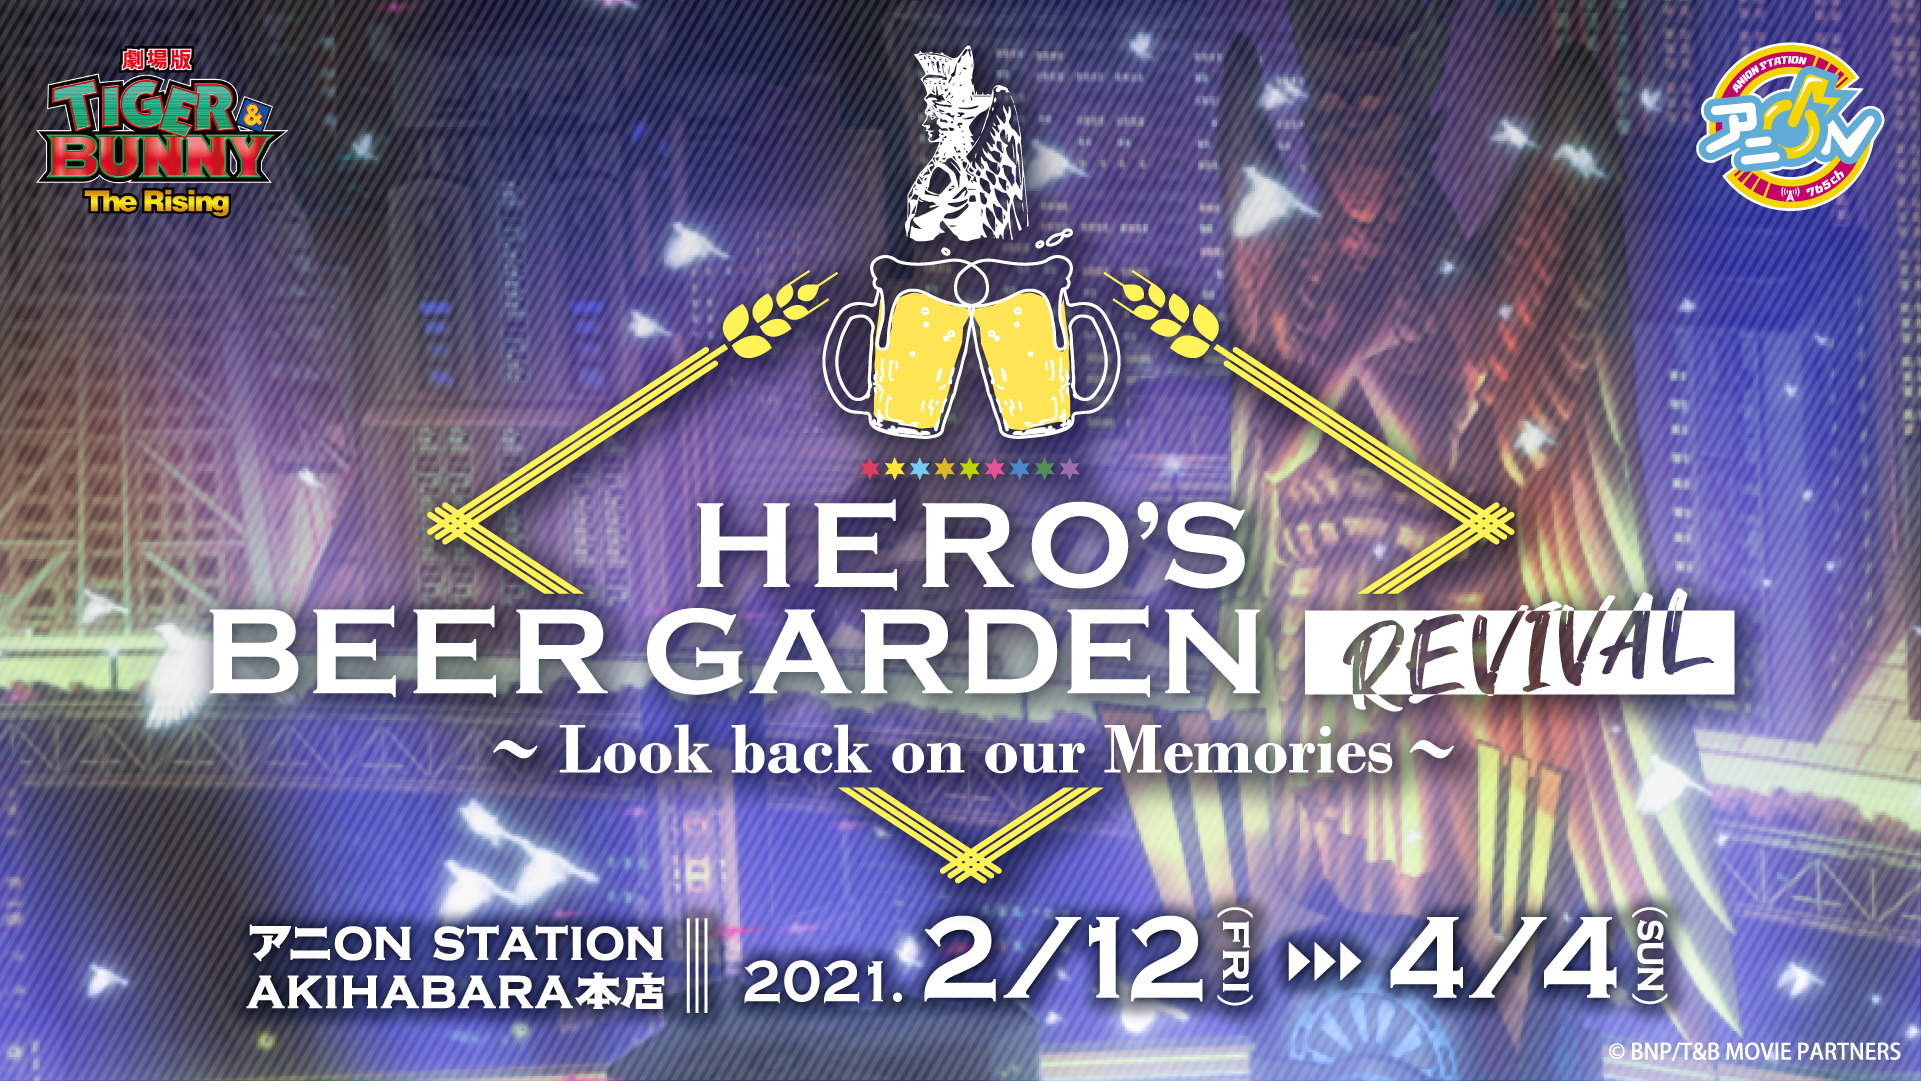 【4/4】HERO'S BEER GARDEN Revival